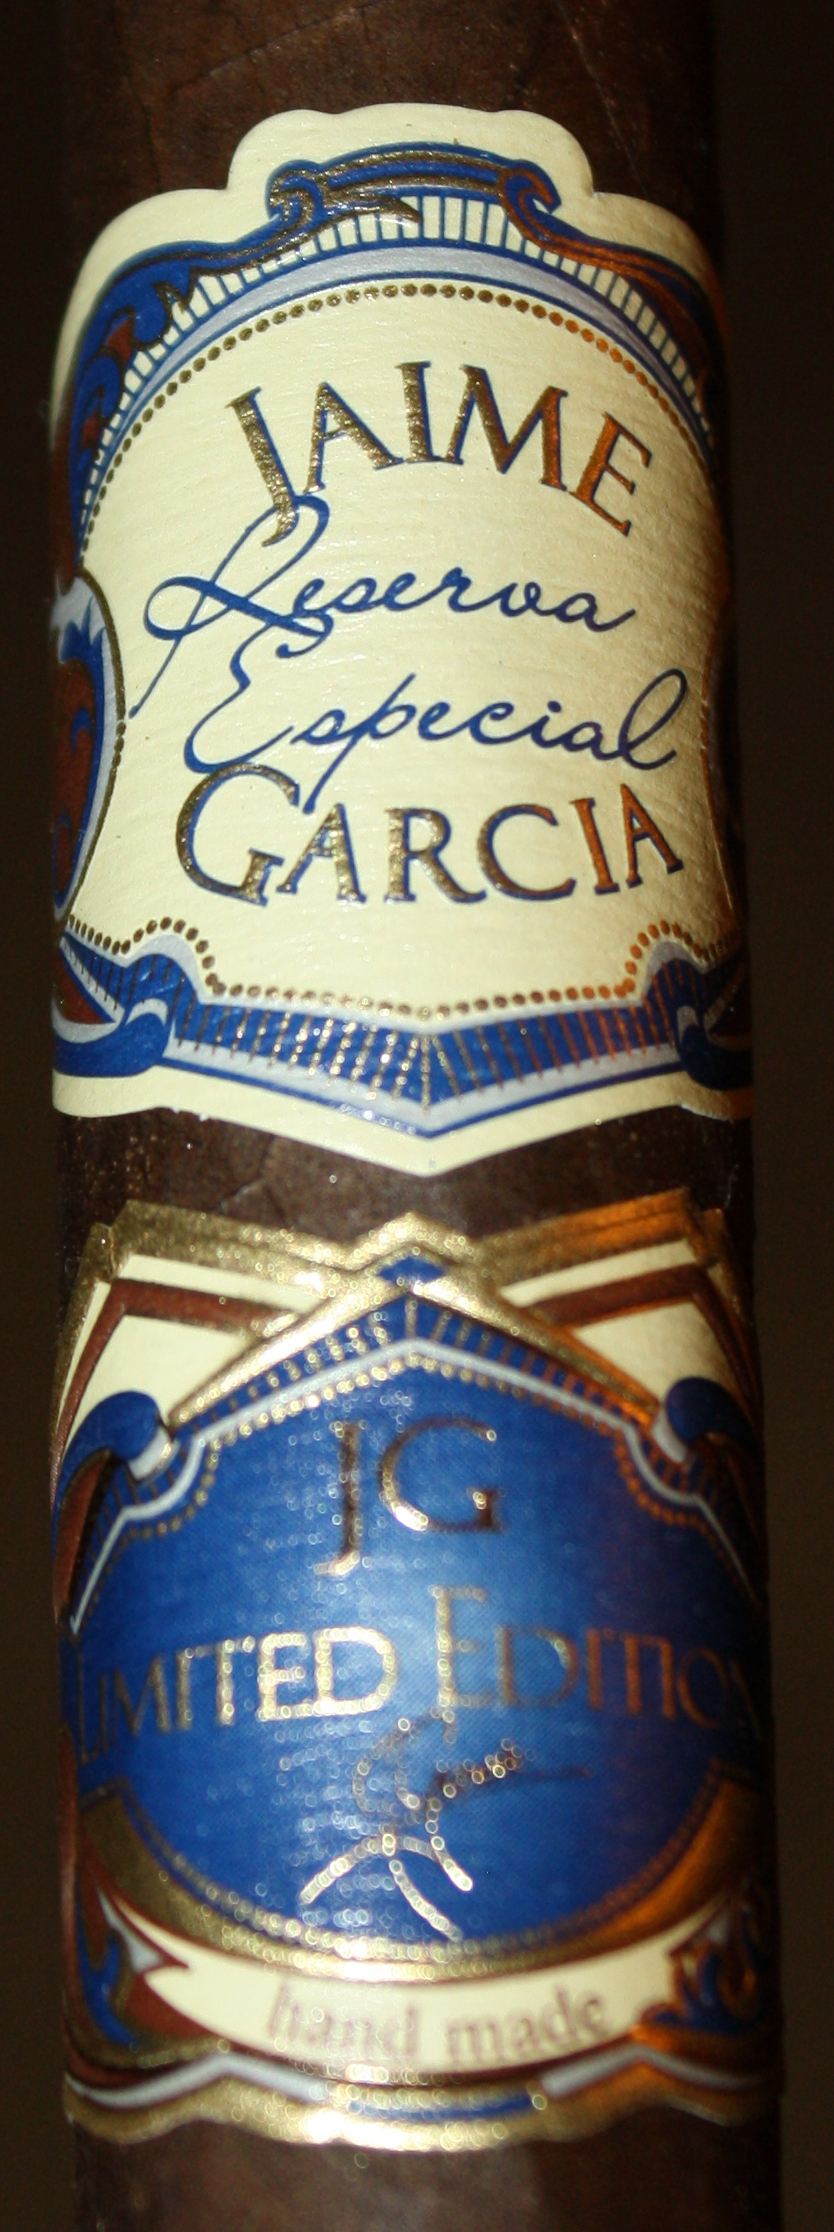 Jaime Garcia Reserva Especial Limited Edition 2011 – Cigar Review